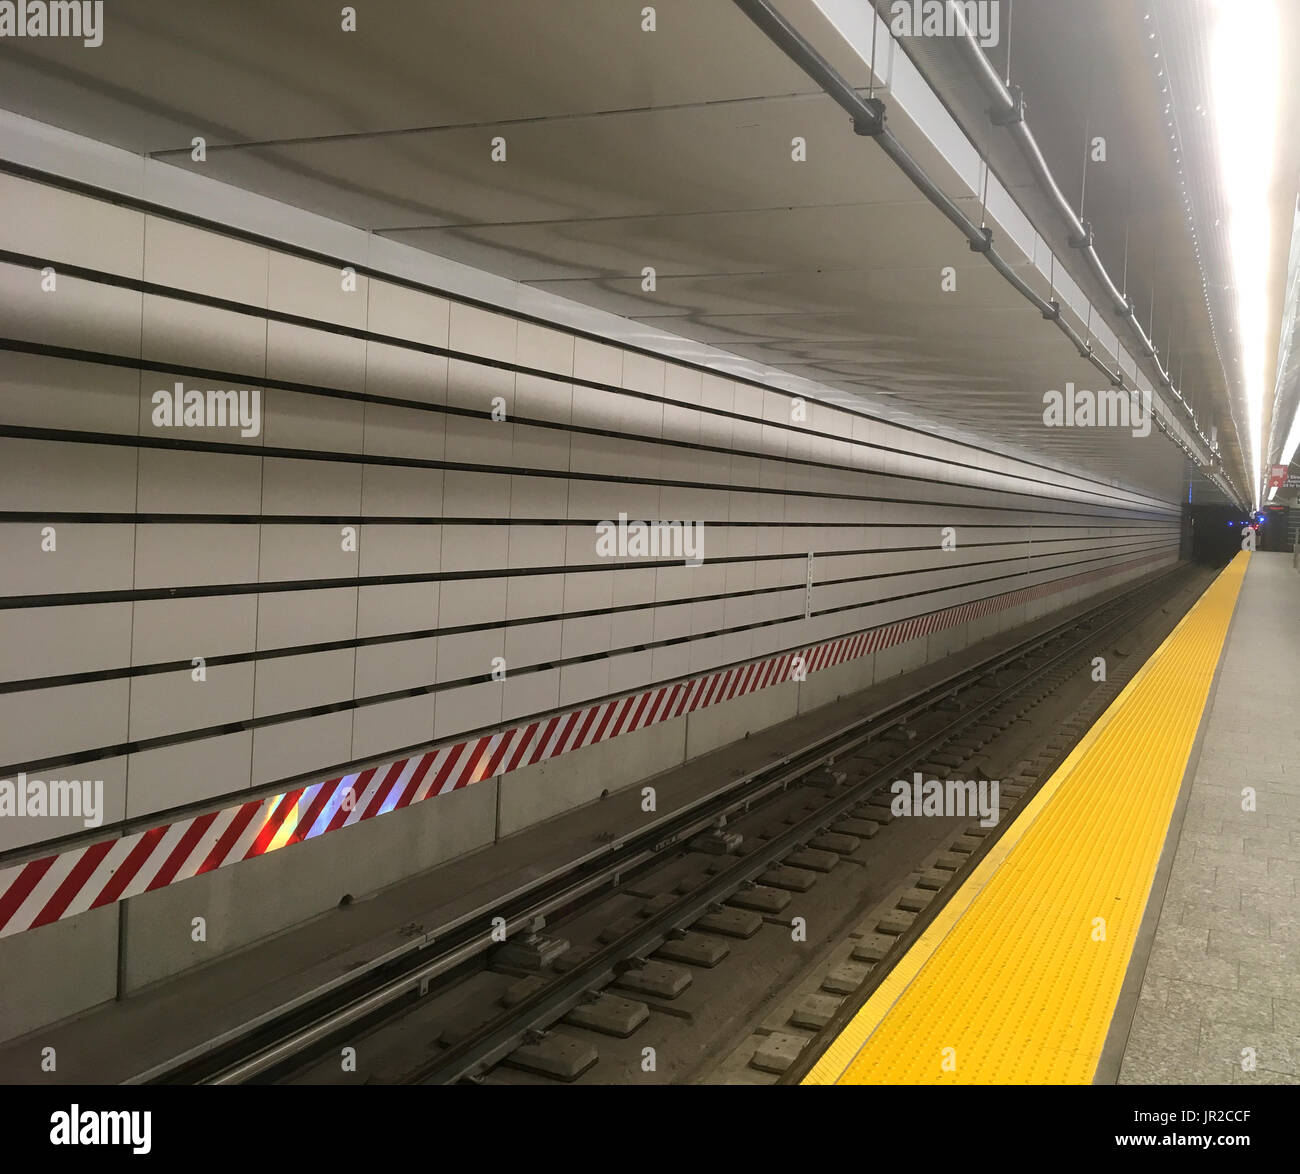 Long metro track stretching ahead new york city subway station with long metro track stretching ahead new york city subway station with white subway tiles red and white hazard warning and clear train tracks free of d dailygadgetfo Choice Image